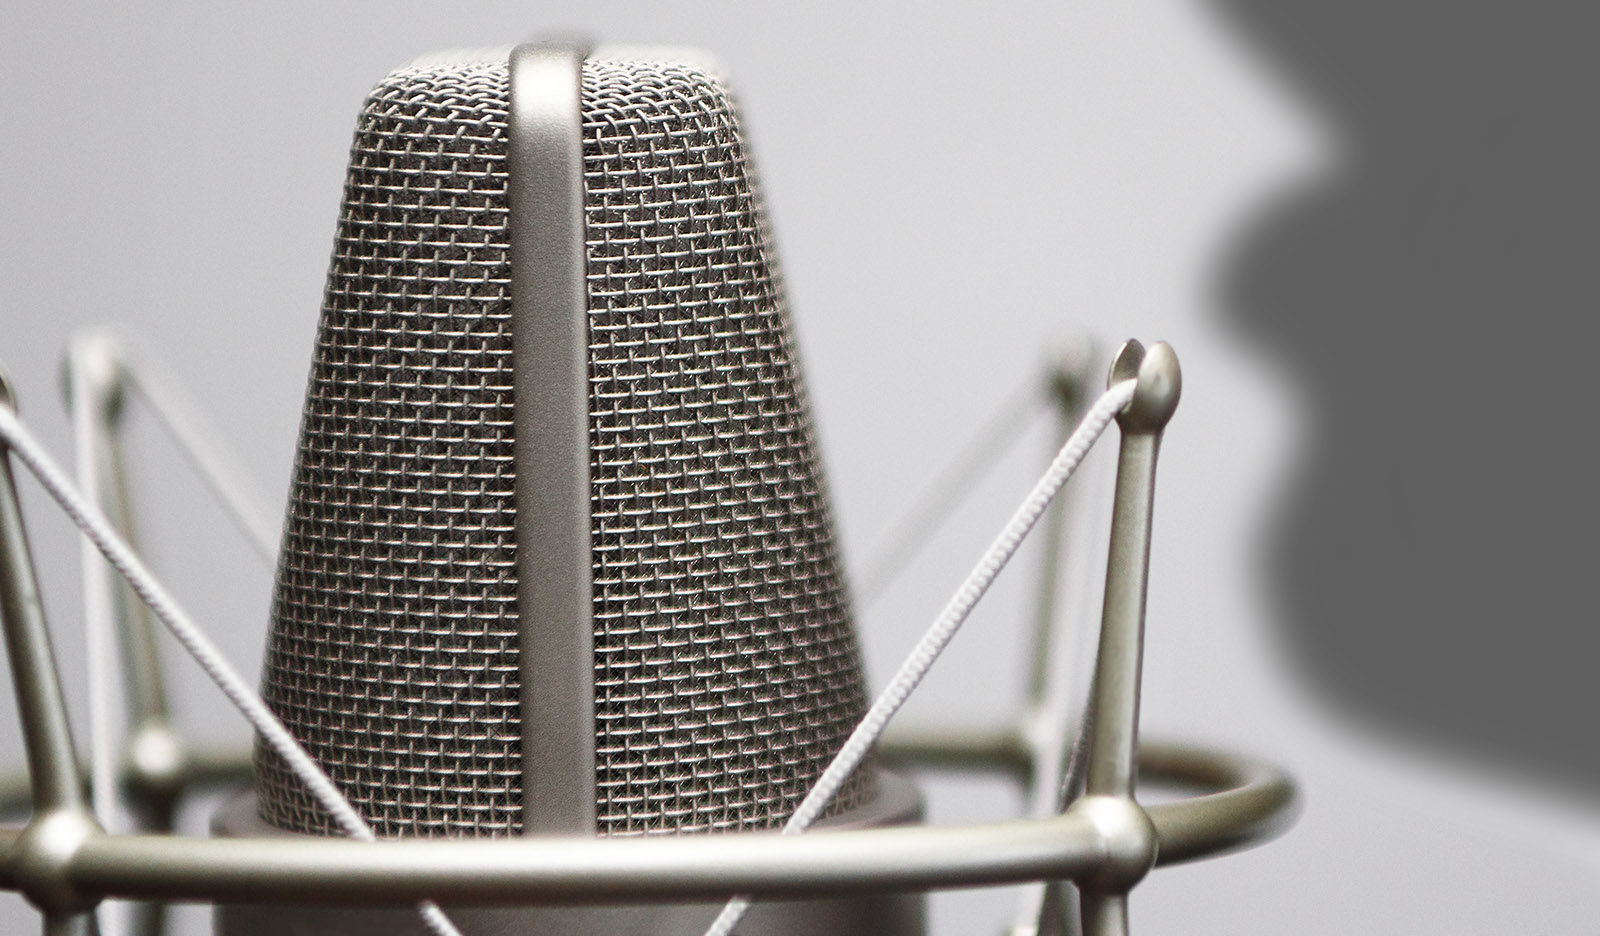 Microphone Basics: What Is the Proximity Effect?